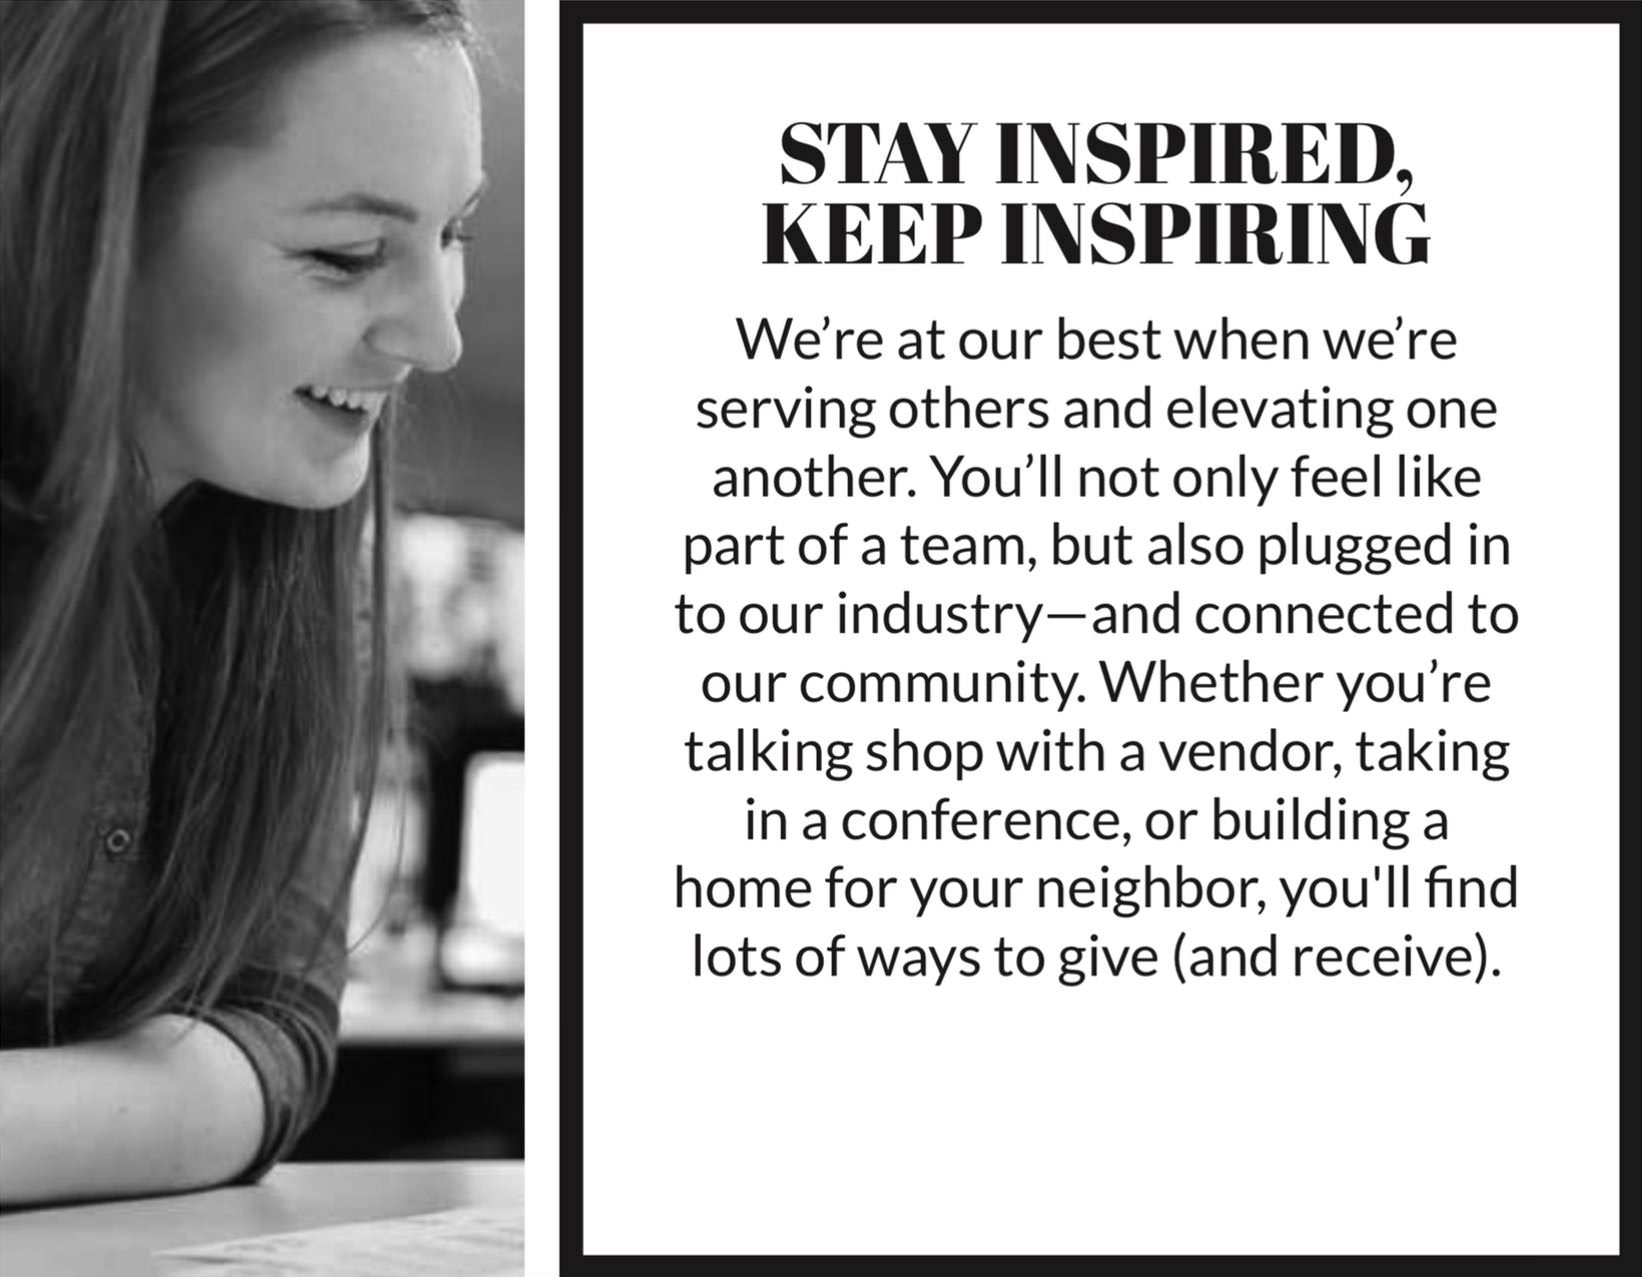 STAY INSPIRED, KEEP INSPIRING We're at our best when we're serving others and elevating one another. You'll not only feel like part of a team, but also plugged in to our industry—and connected to our community. Whether you're talking shop with a vendor, taking in a conference, or building a home for your neighbor, you'll find lots of ways to give (and receive).